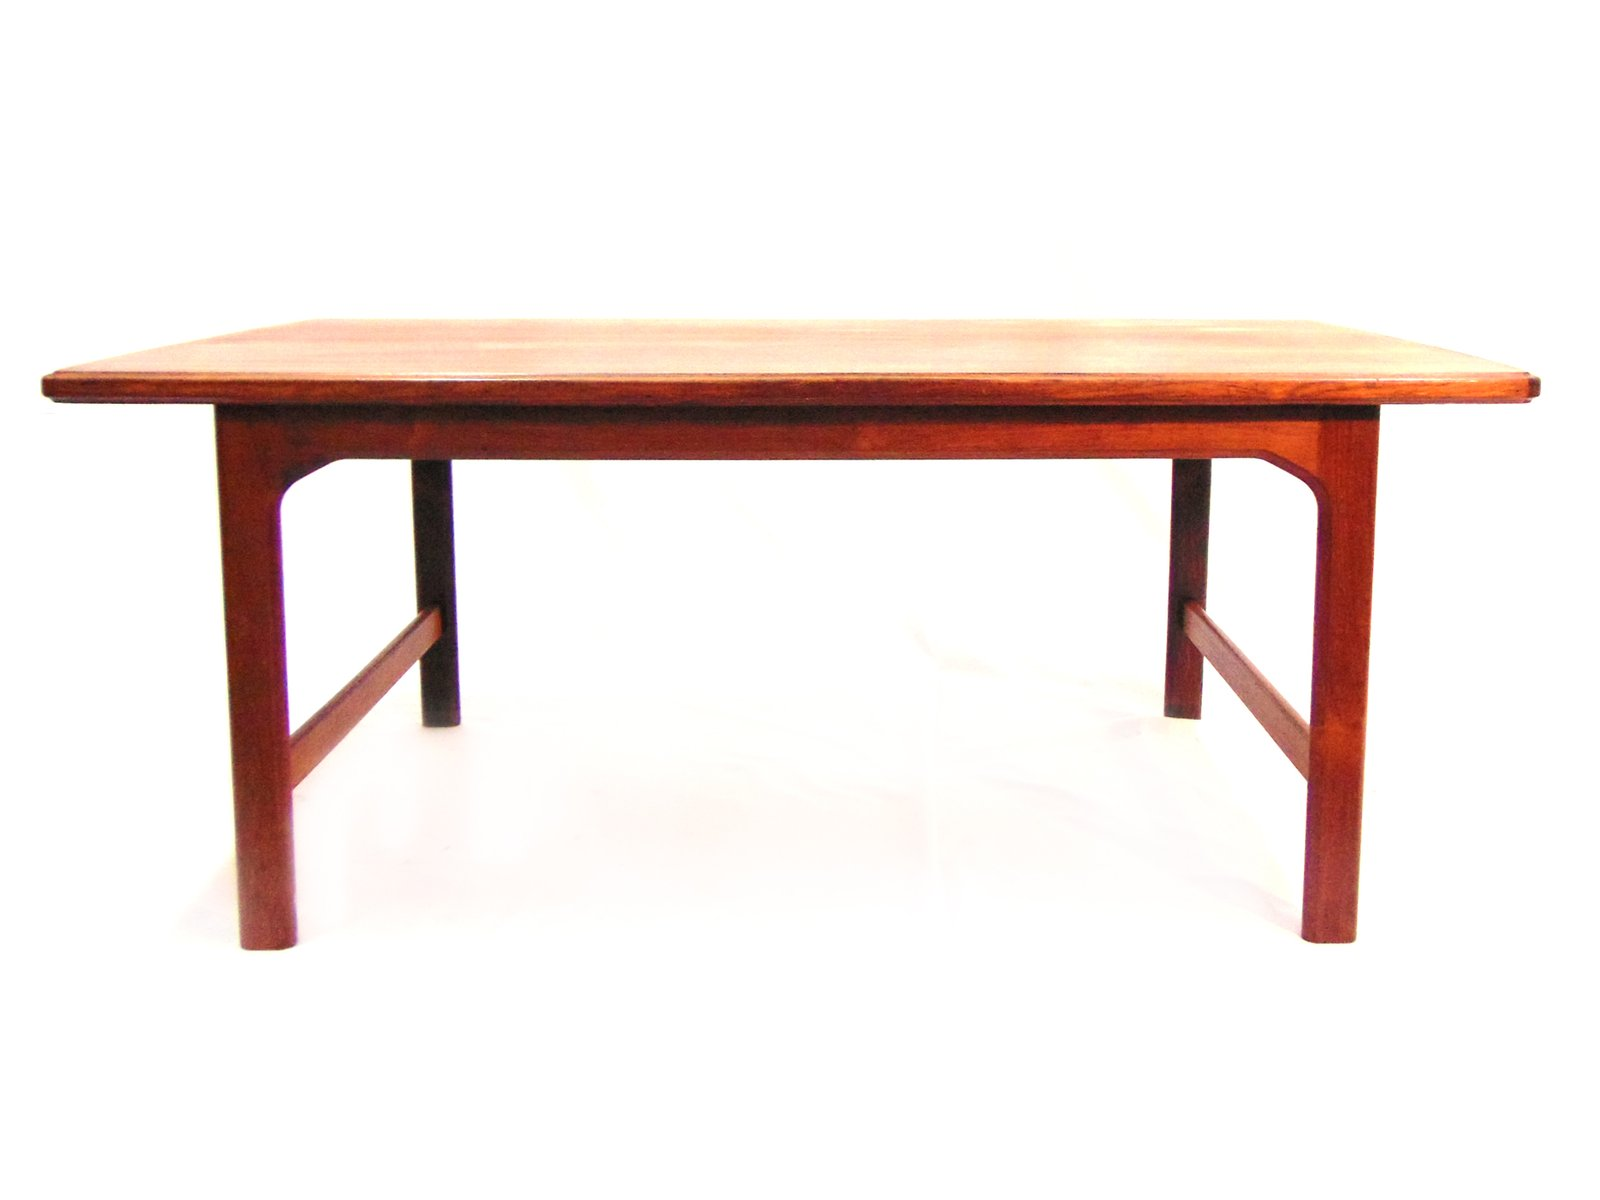 Charmant Swedish Coffee Table In Rosewood, 1960s